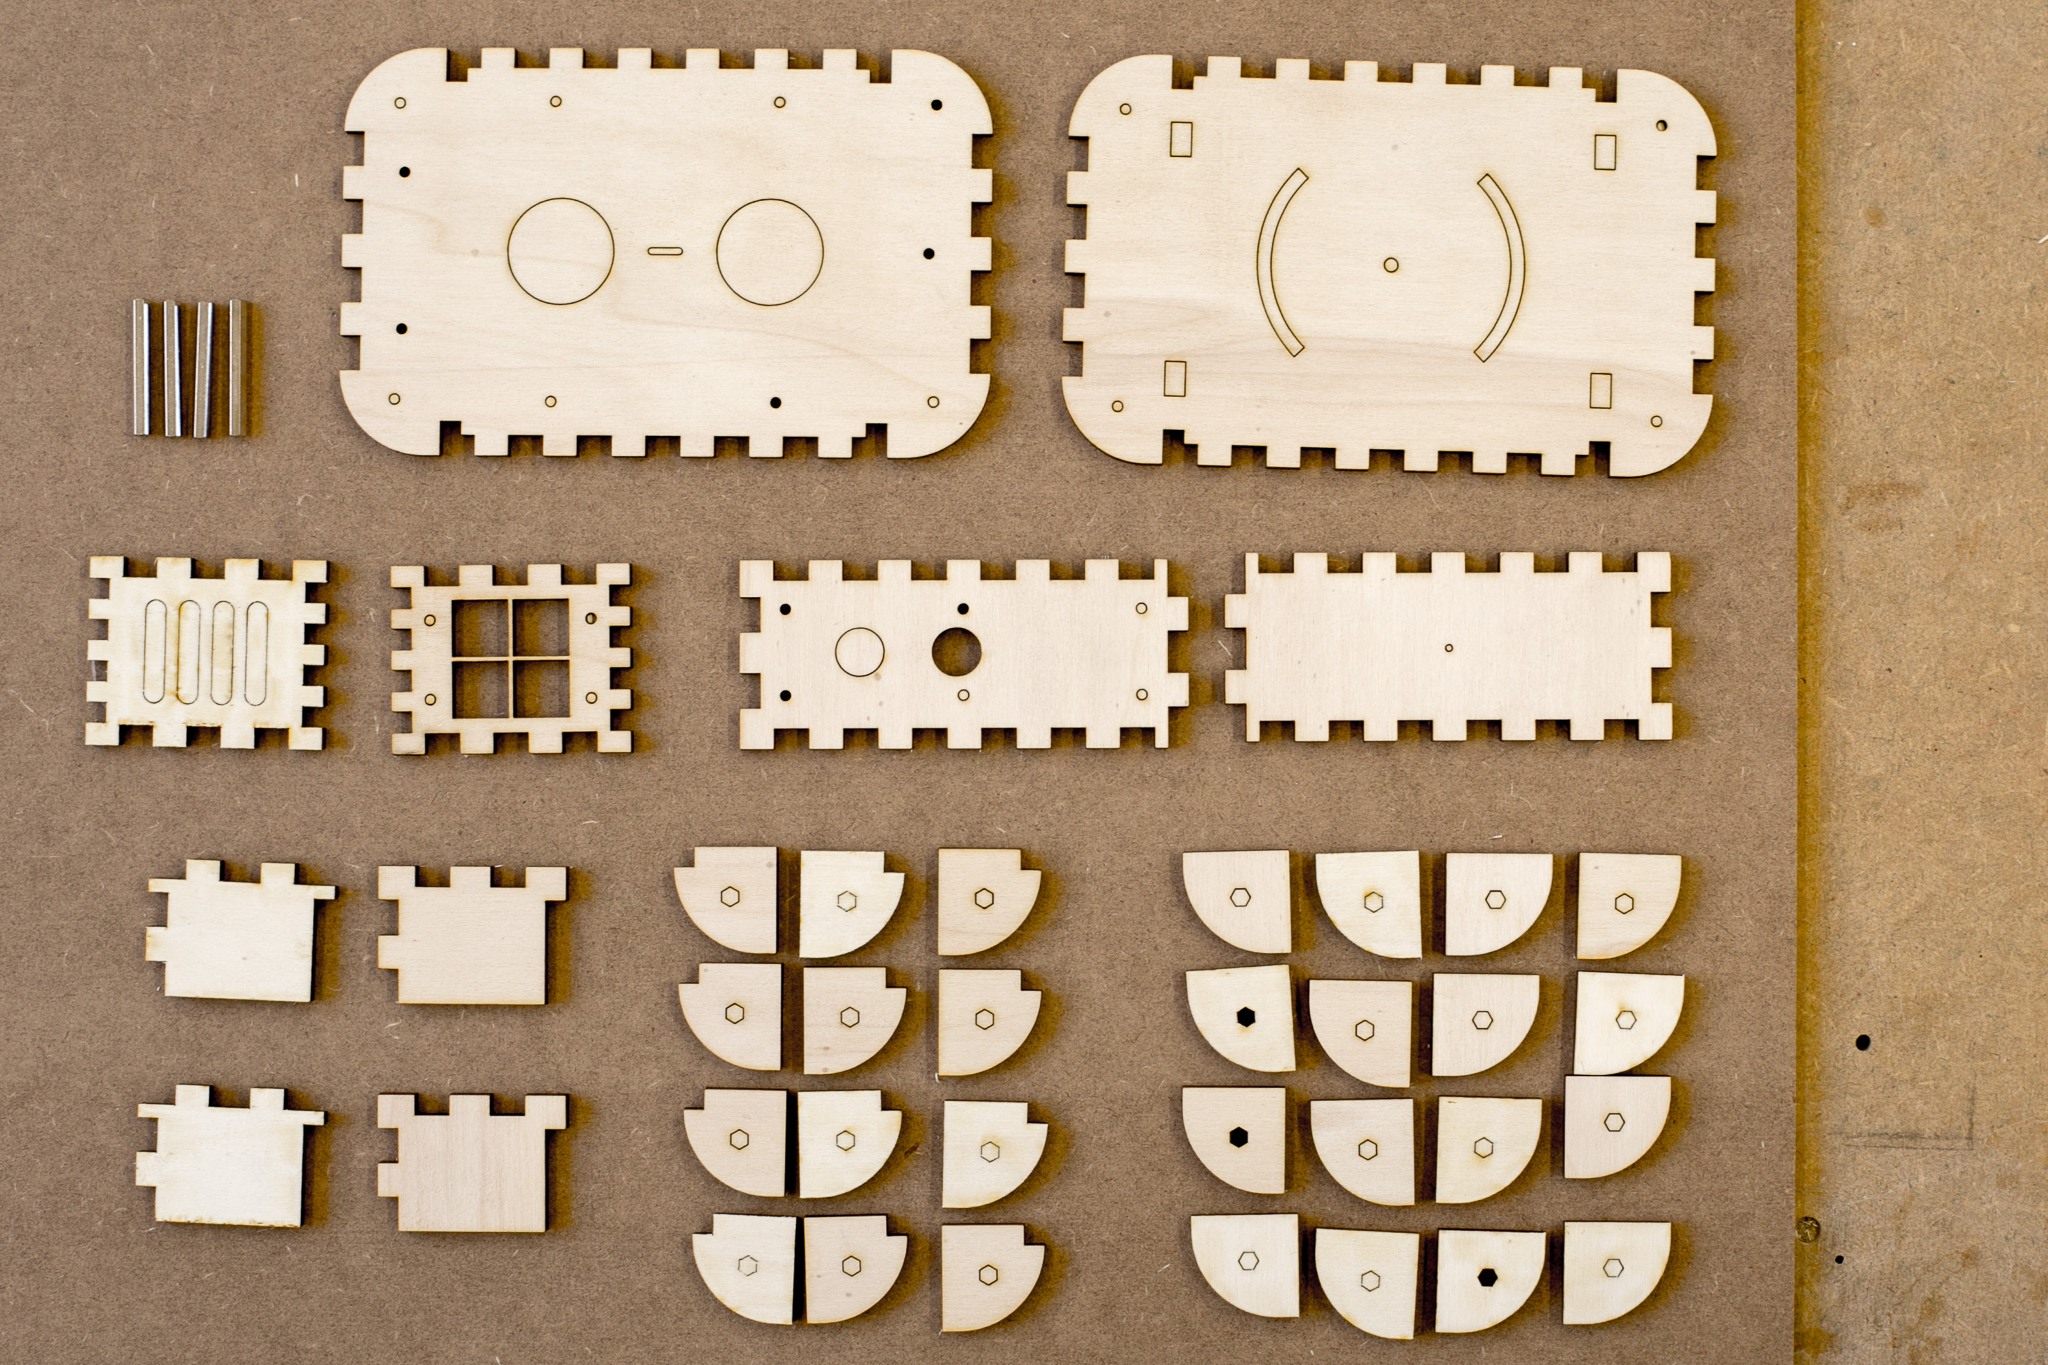 laser-cut wooden parts and spacer bolts